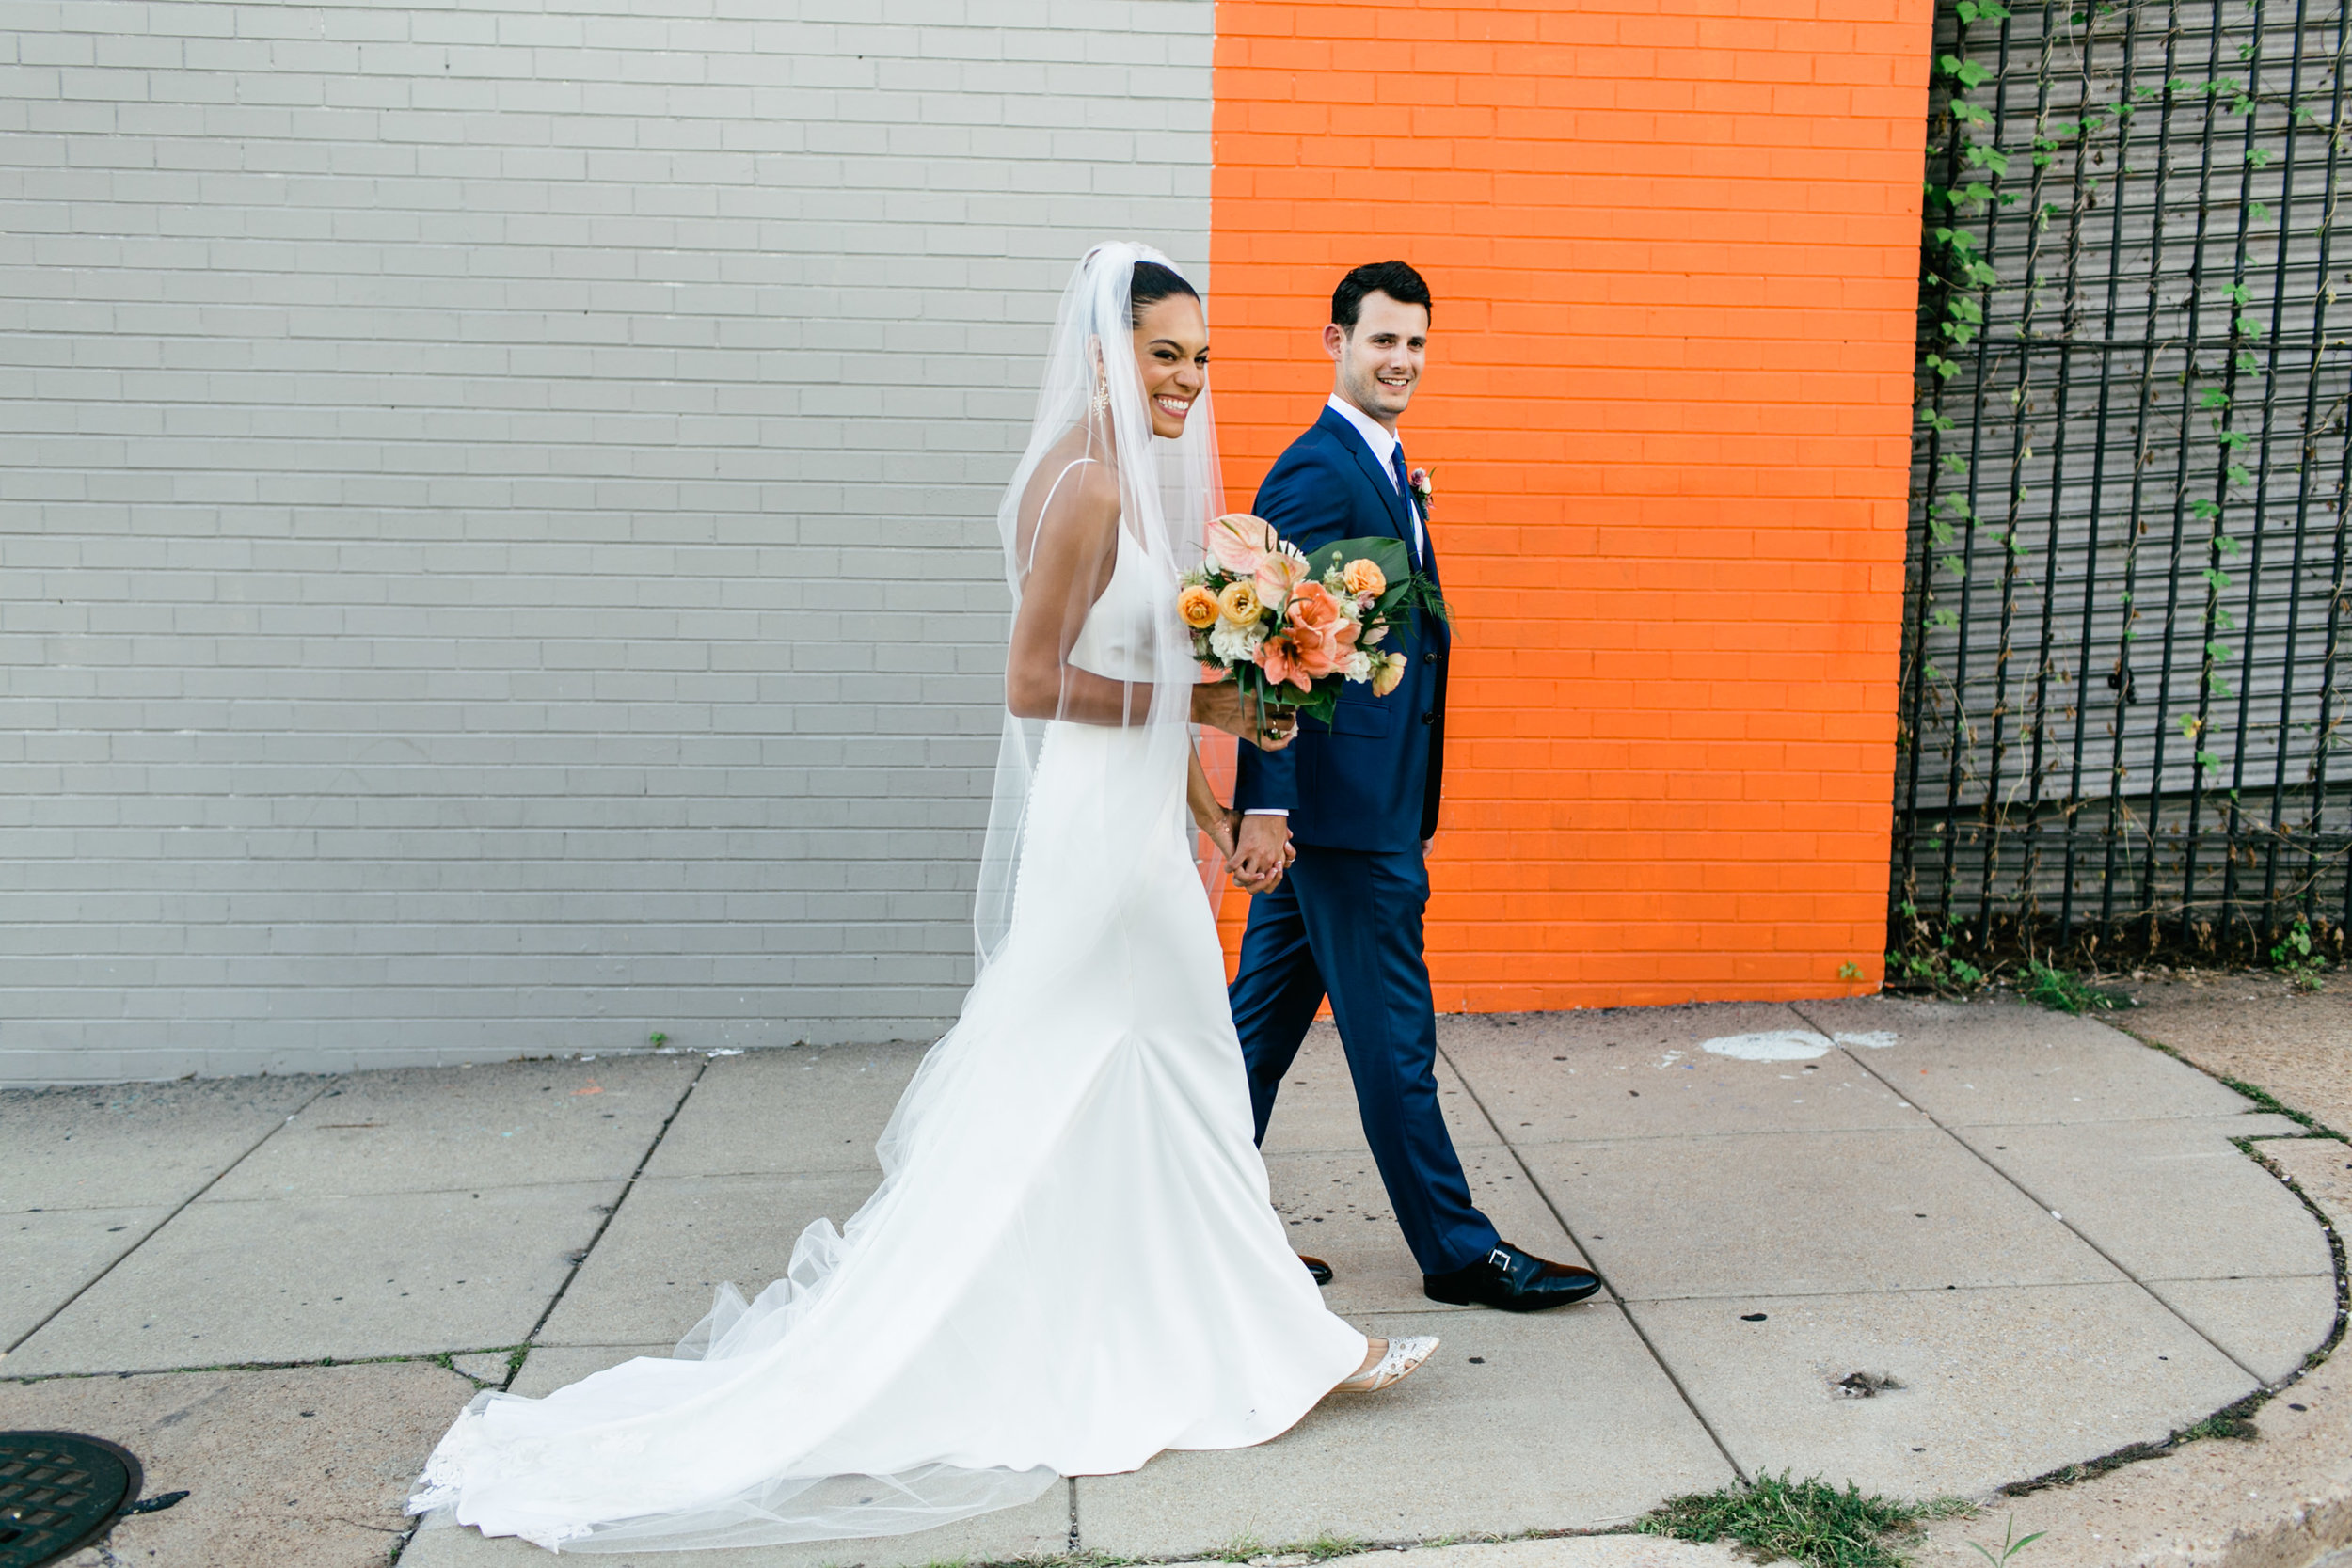 photography-wedding-weddings-natural-candid-dock 5 dc-washington dc-philadelphia-mixed race-editorial-modern-fine-art-039.JPG